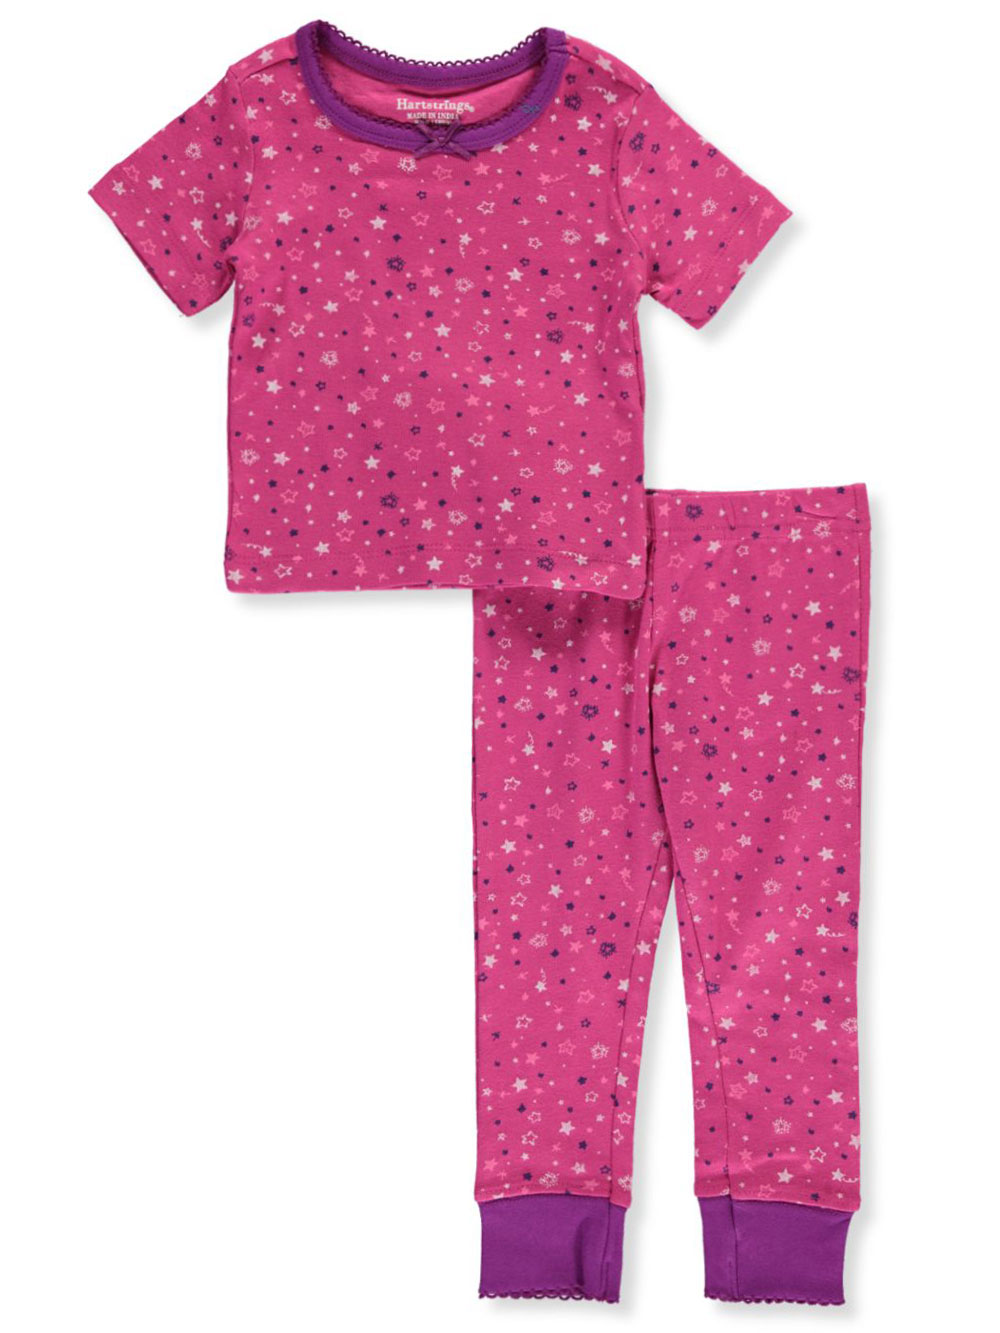 Girls' Stars 2-Piece Pajamas